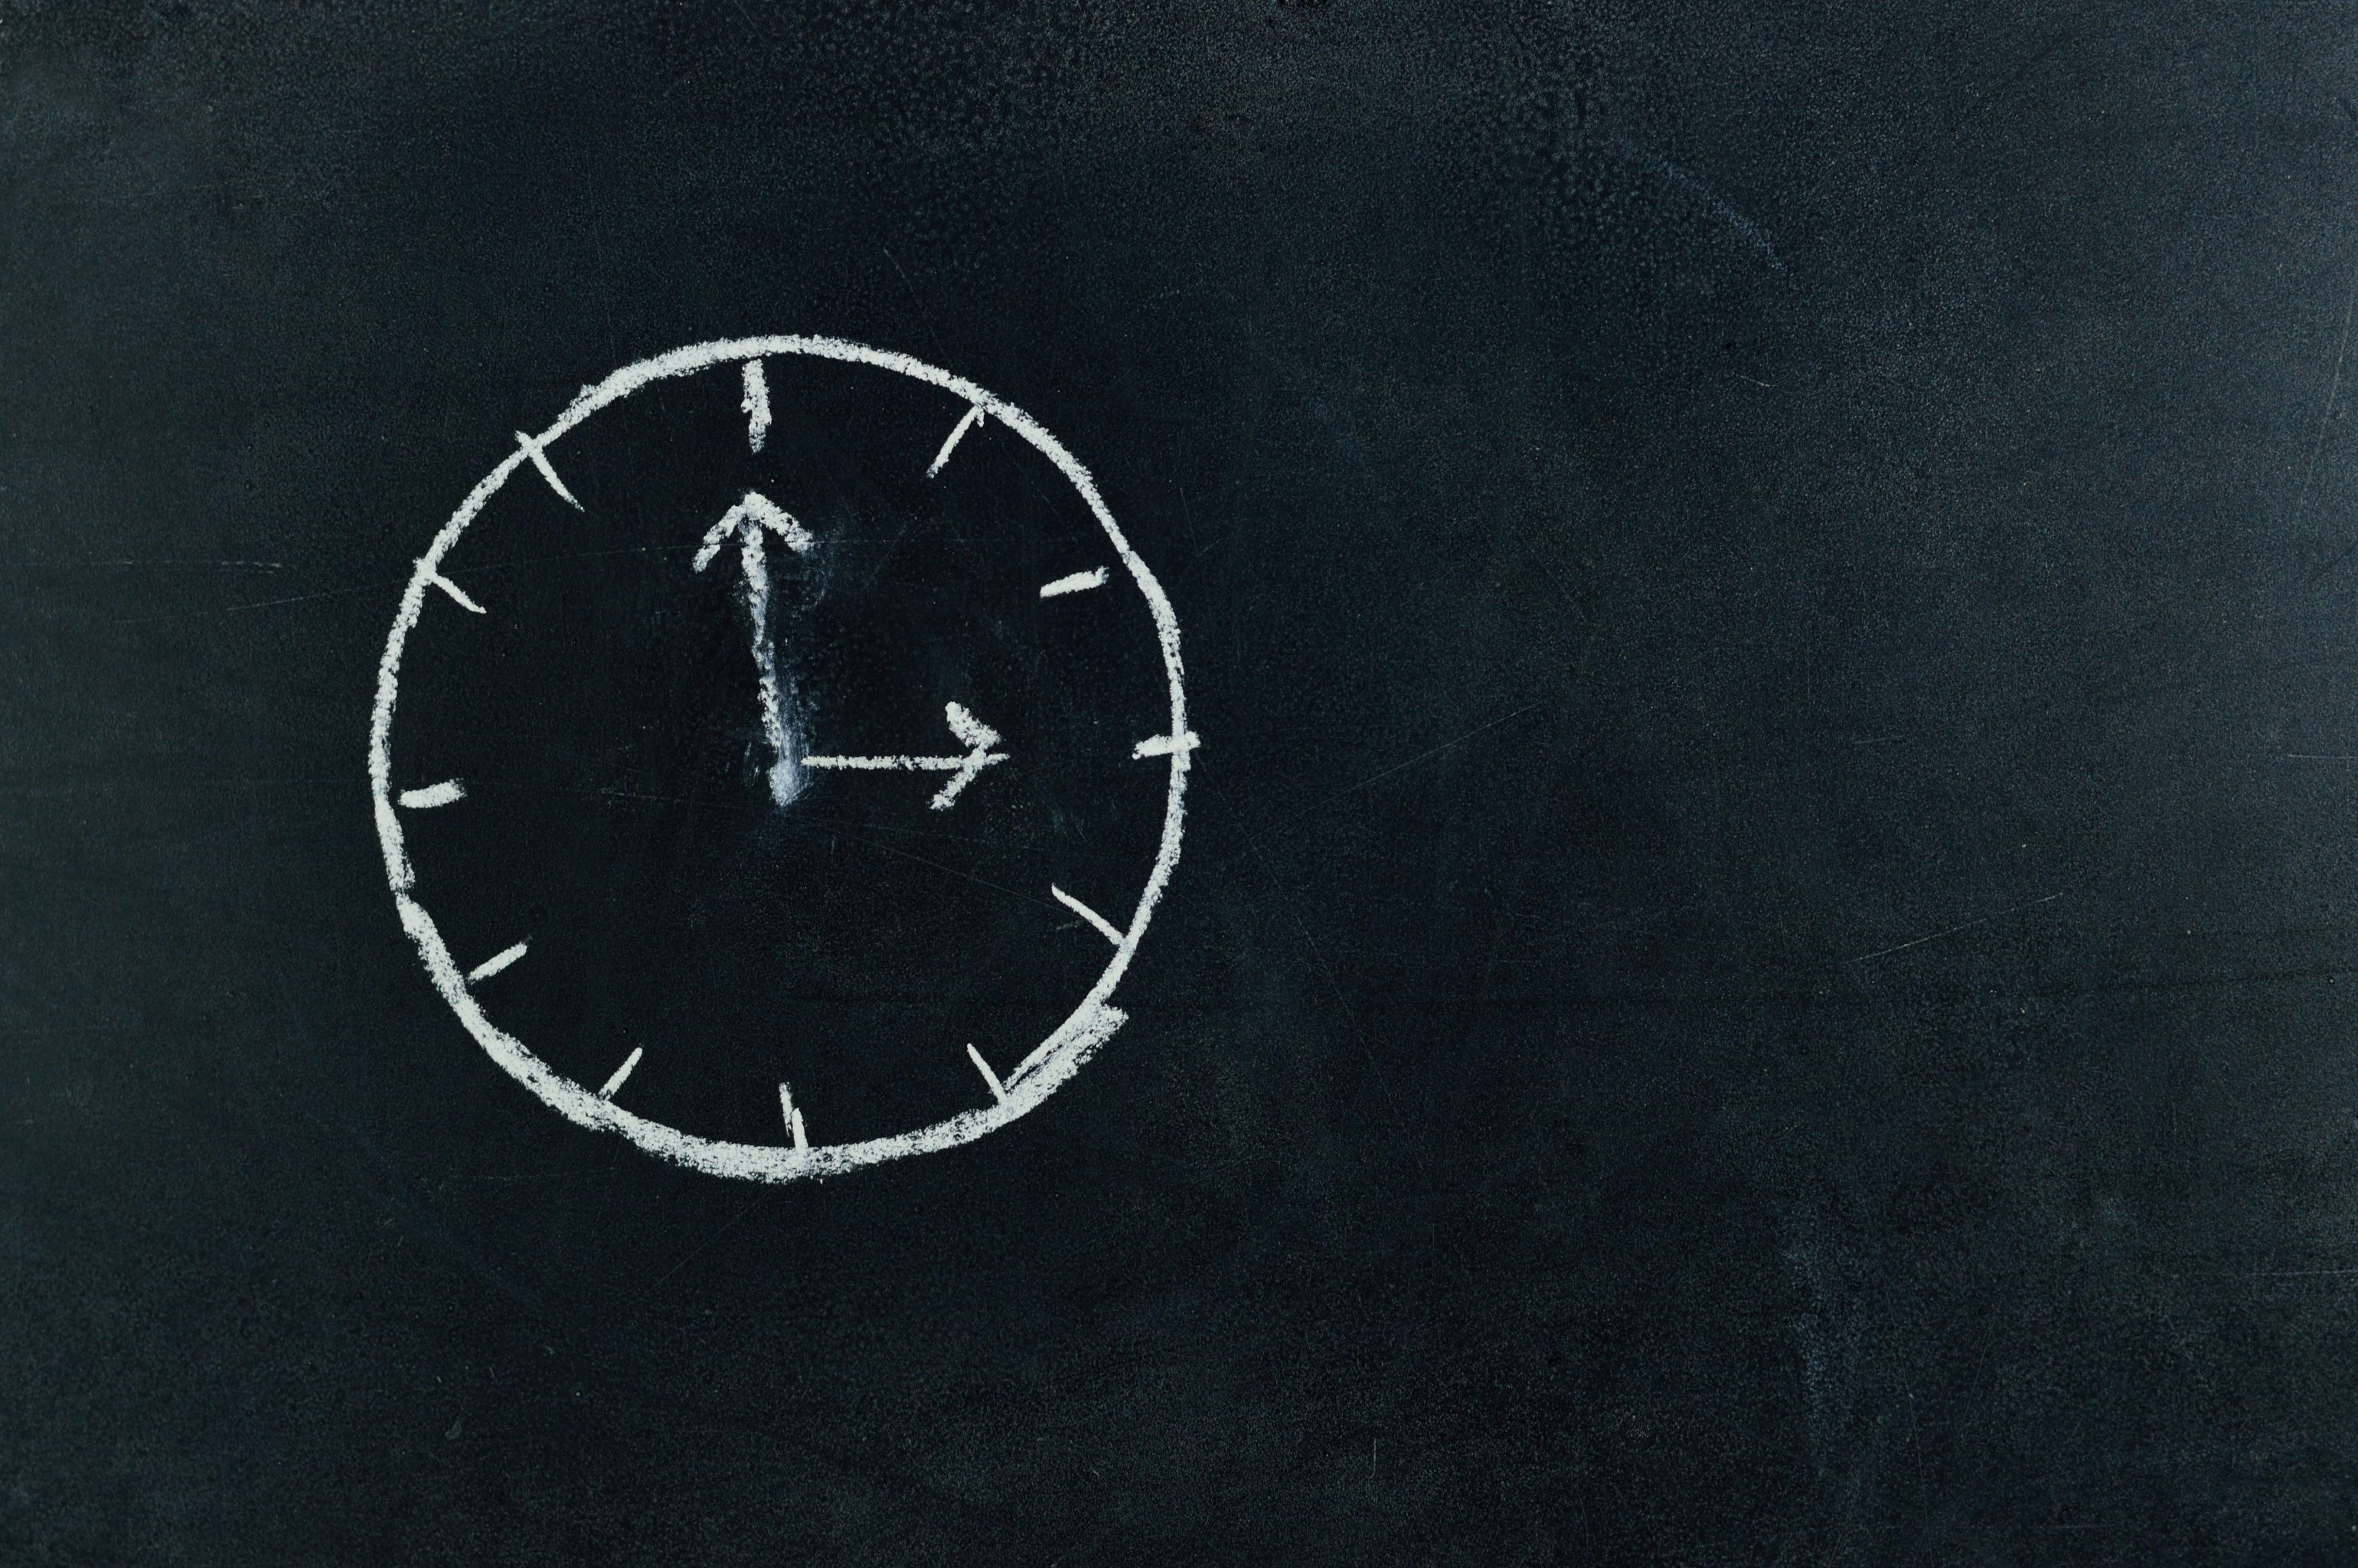 How to Teach Time Management Effectively to Elementary Students (Even Kindergartners!)